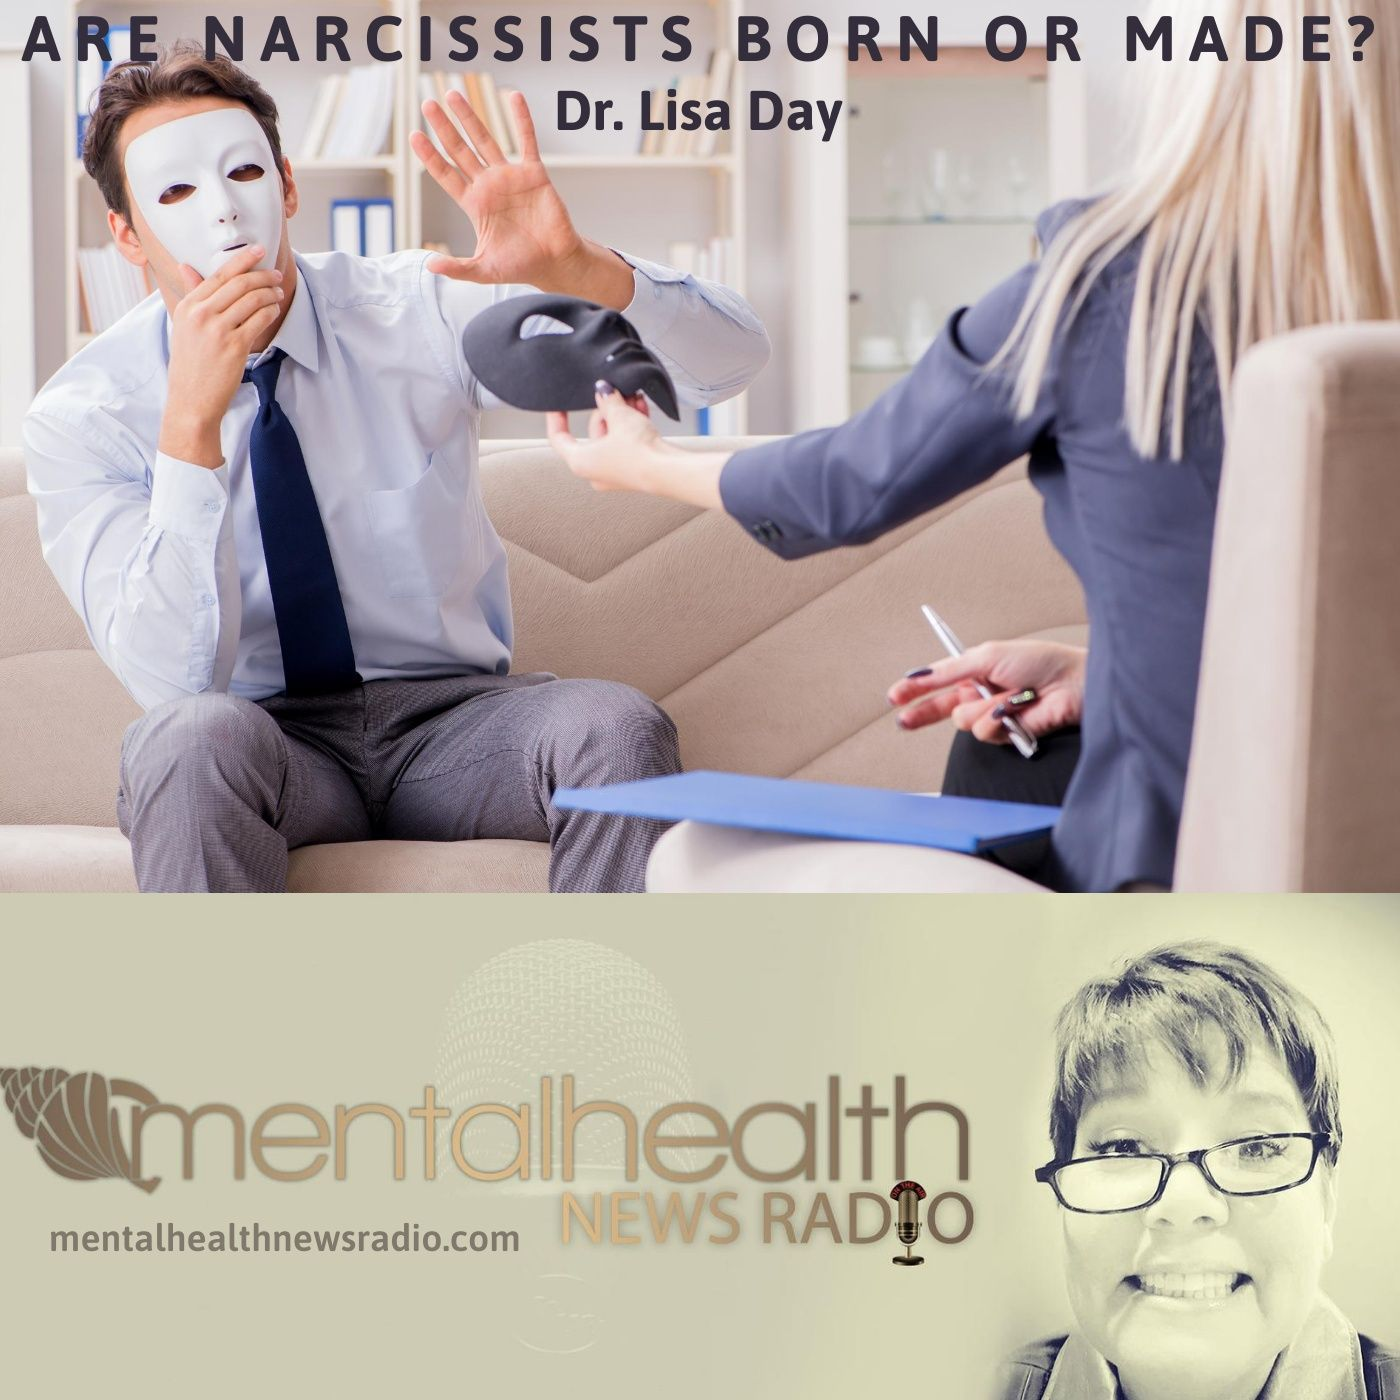 Mental Health News Radio - Are Narcissists Born or Made?